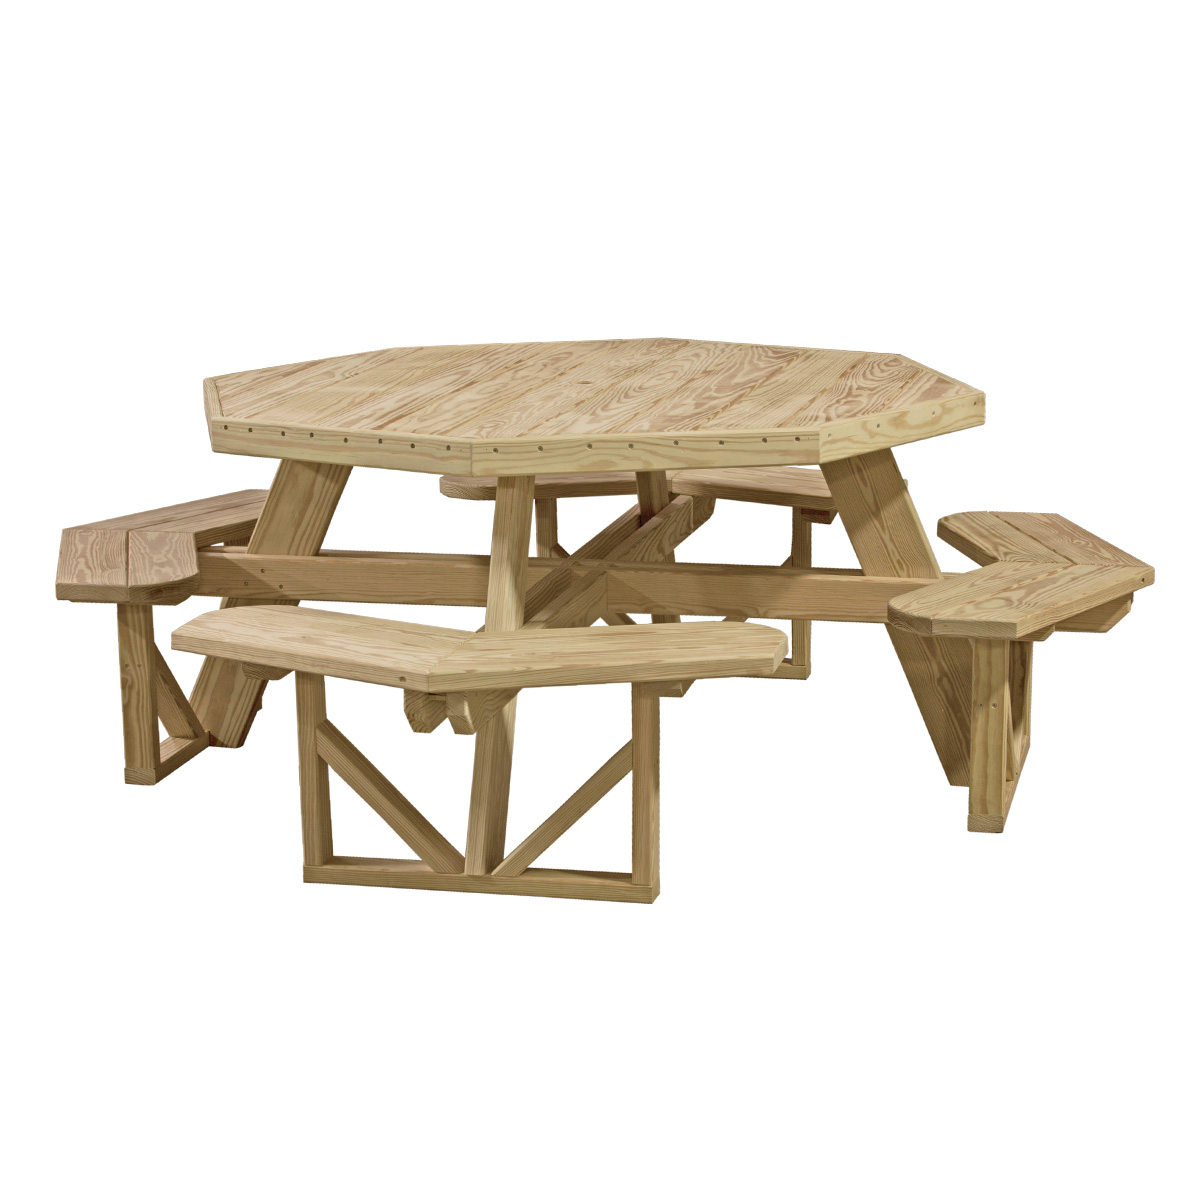 Octagon picnic table luxcraft - Luxcraft fine outdoor furniture ...